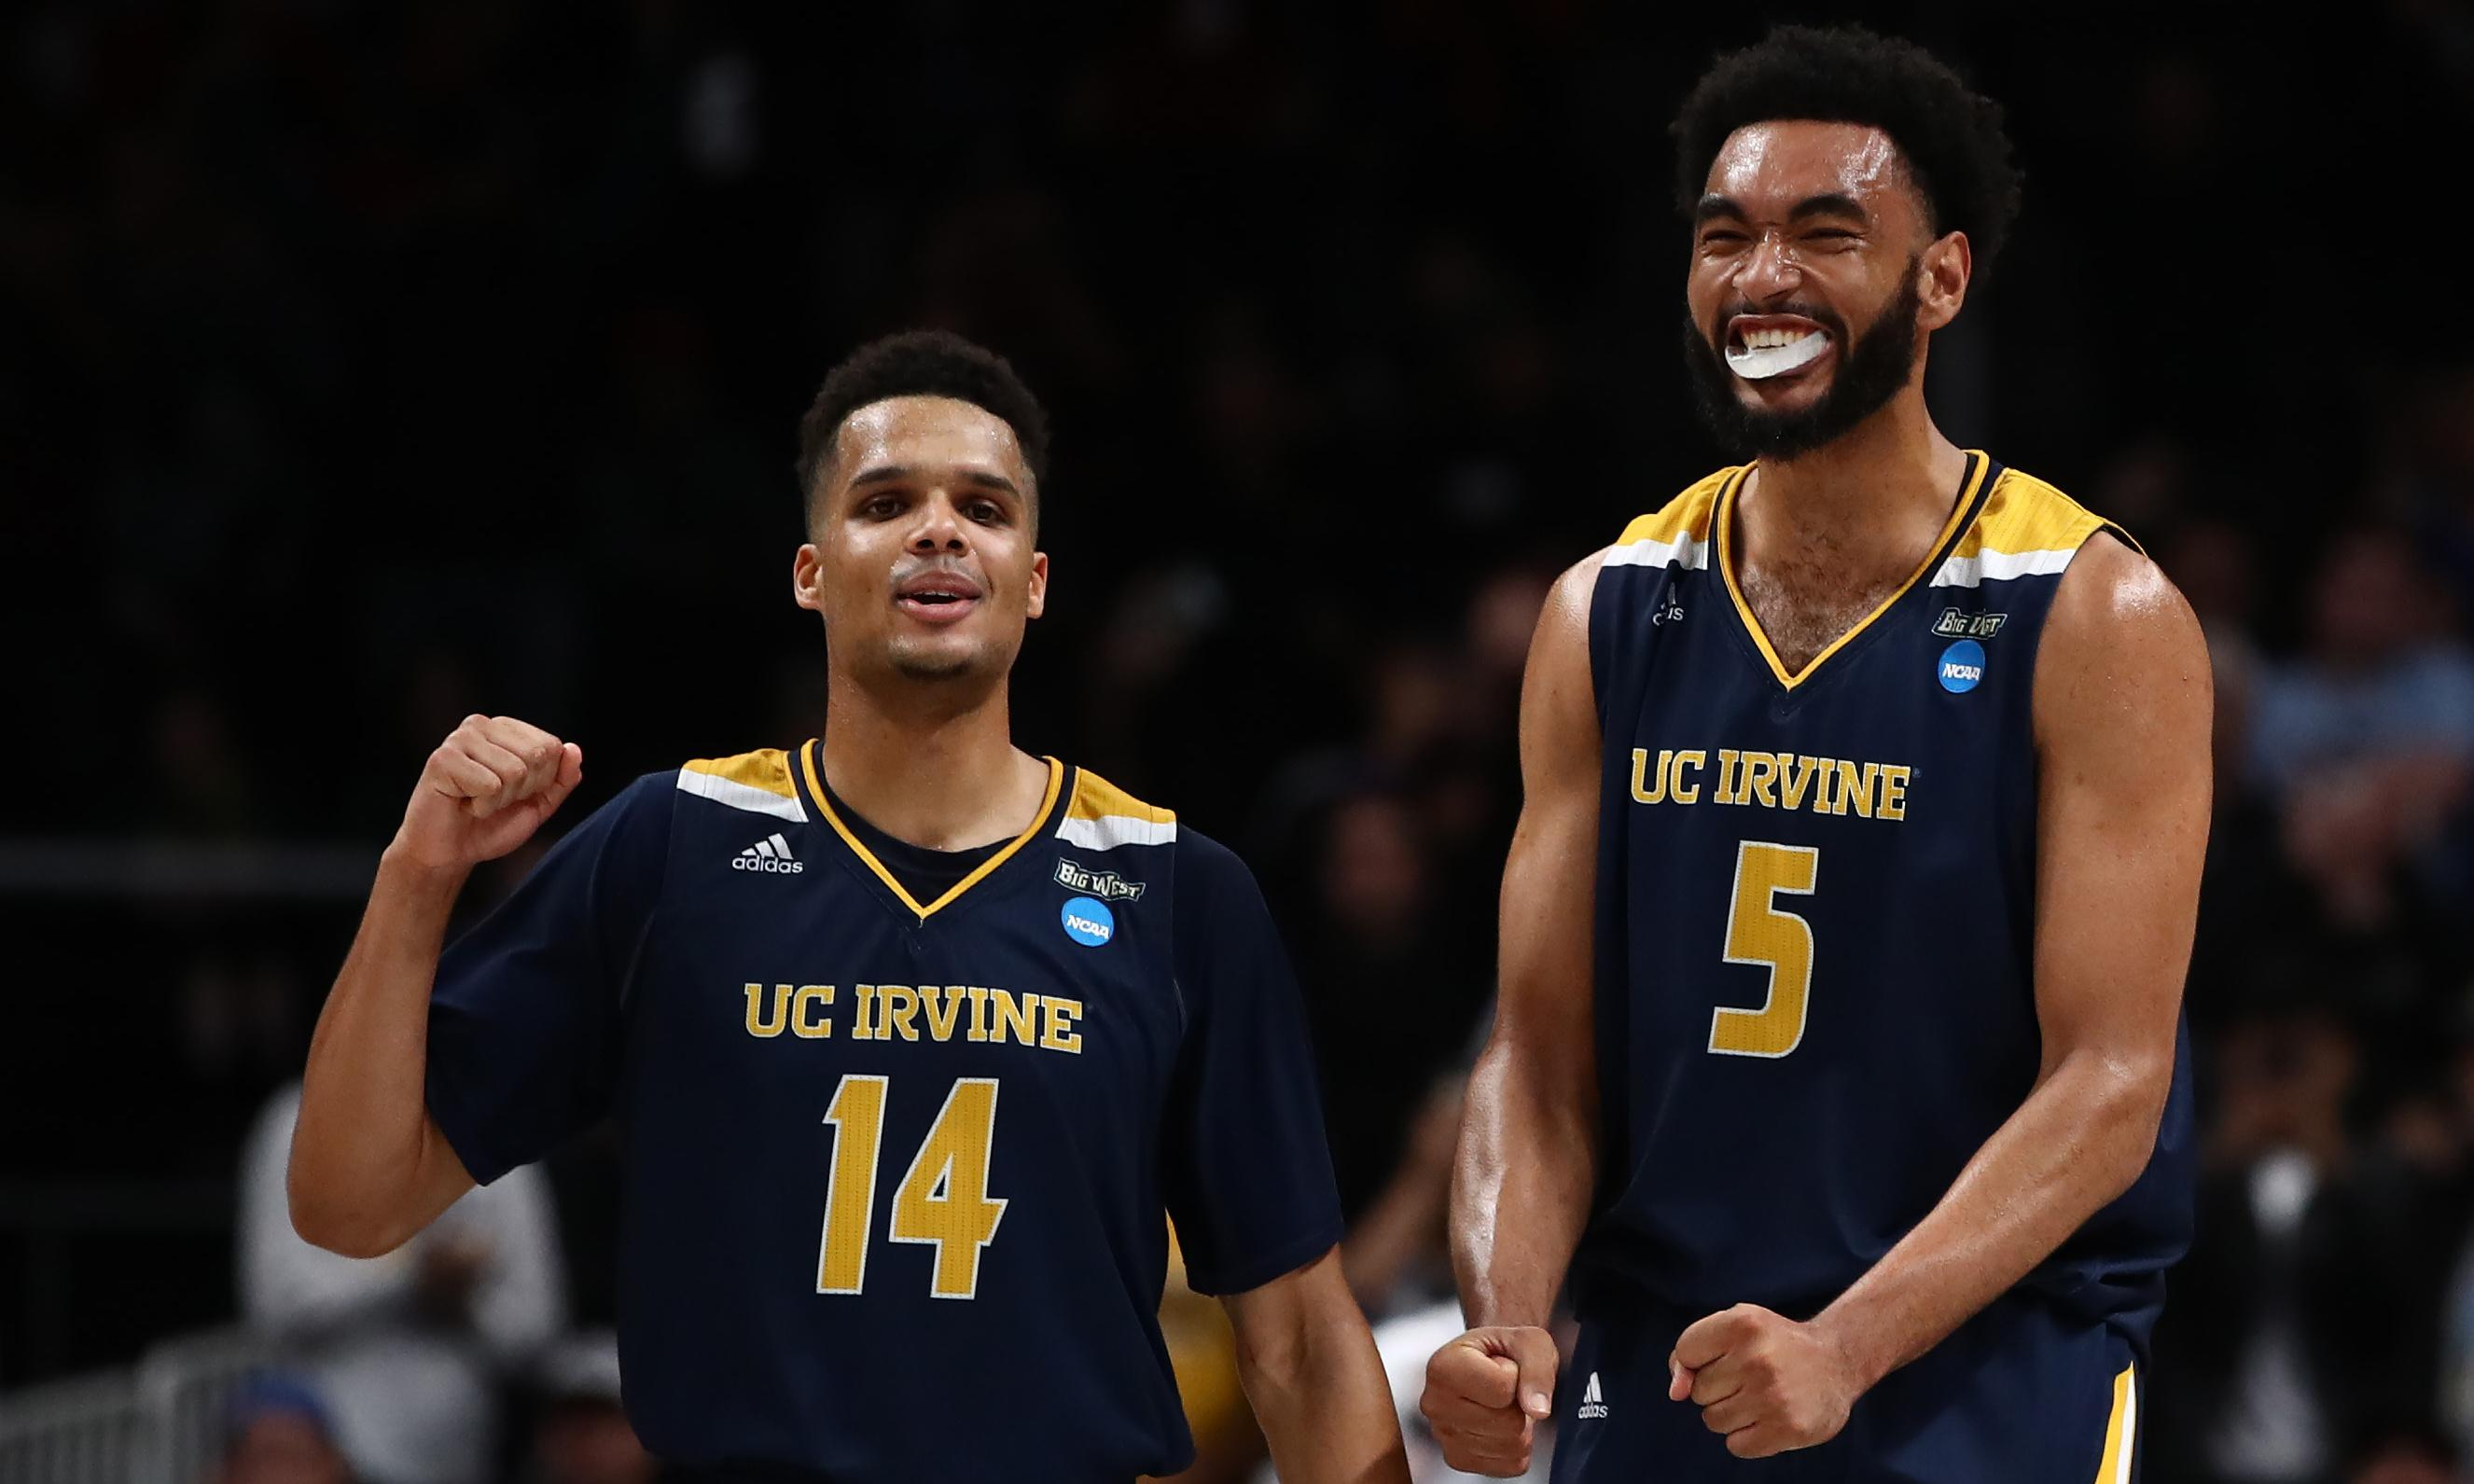 UC Irvine stun Kansas State for first NCAA tournament win in school history